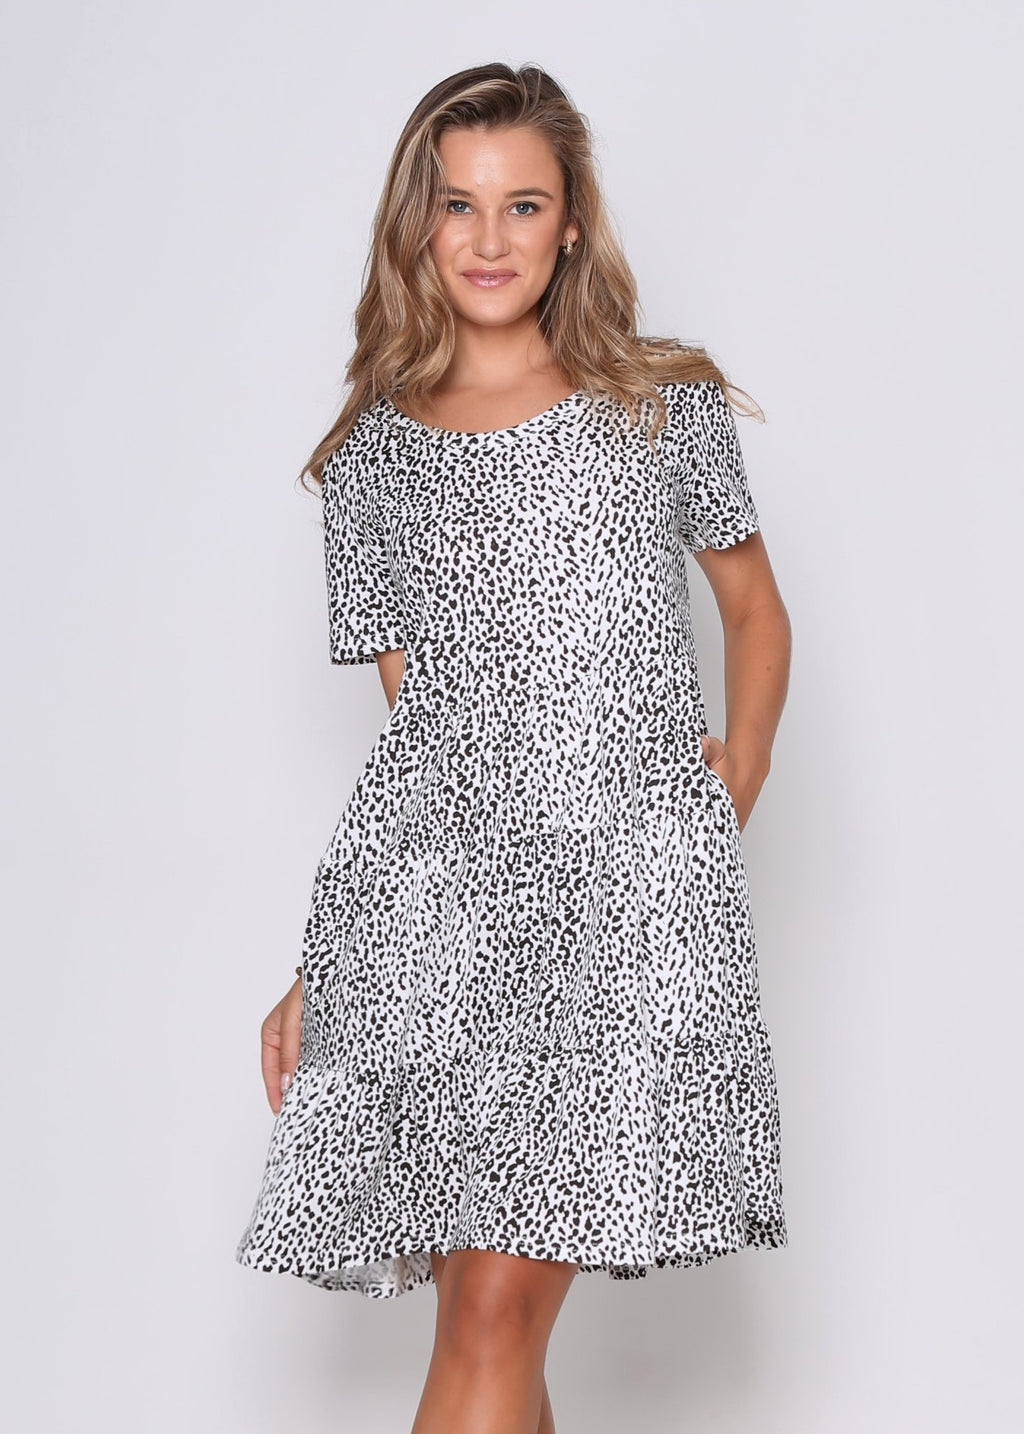 JUST IN - BRONDA DRESS - WHITE LEOPARD